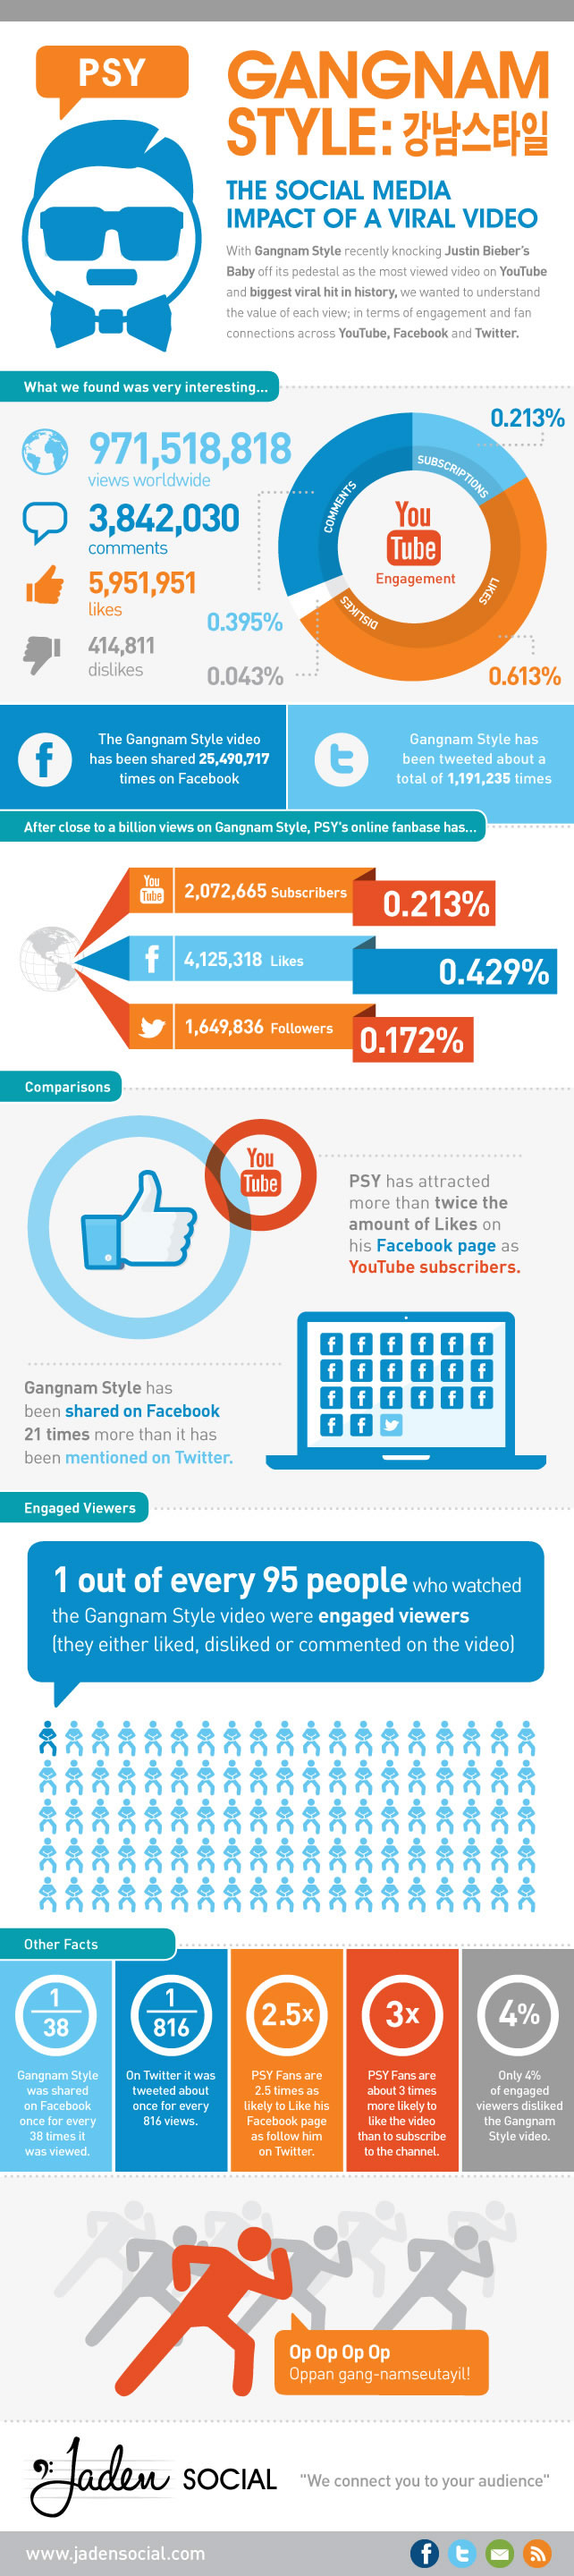 Gangnam Style: The Social Media Impact of a Viral Video